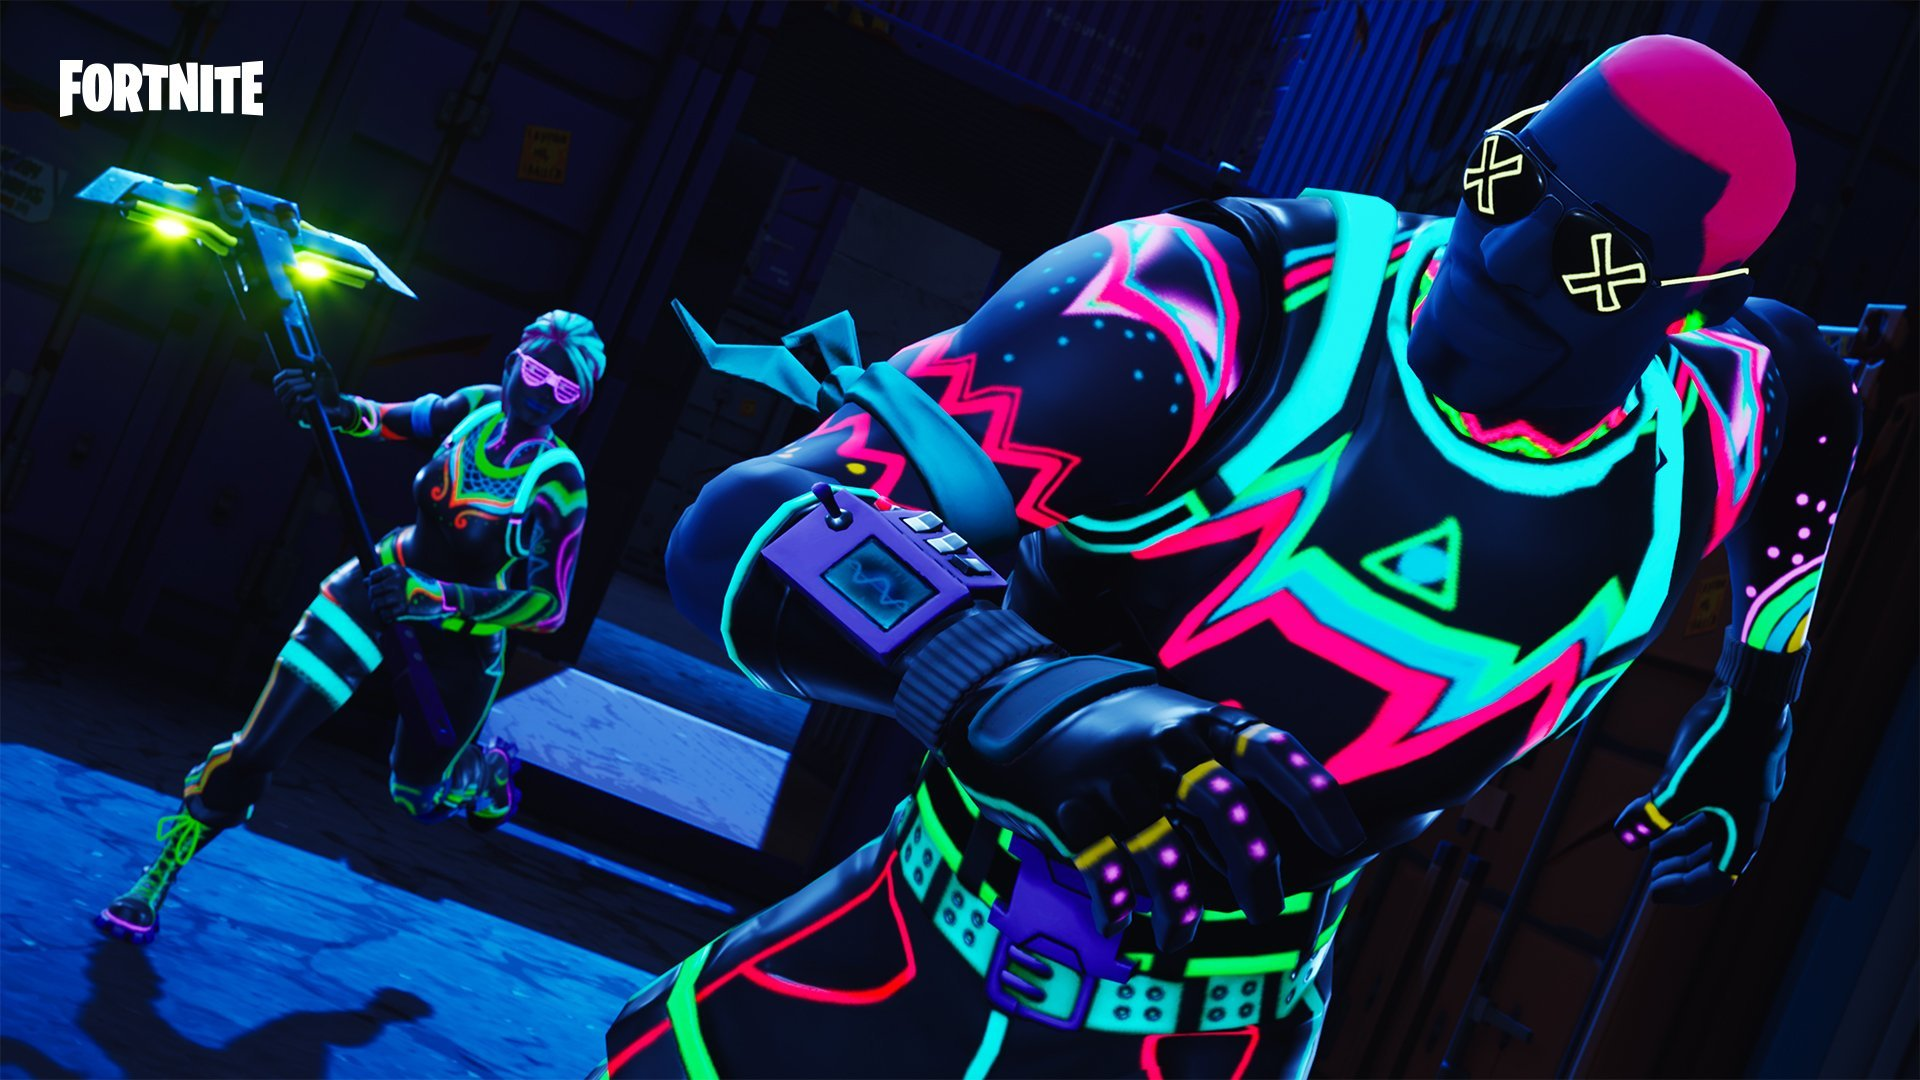 Fortnite Wallpapers, Pictures, Images